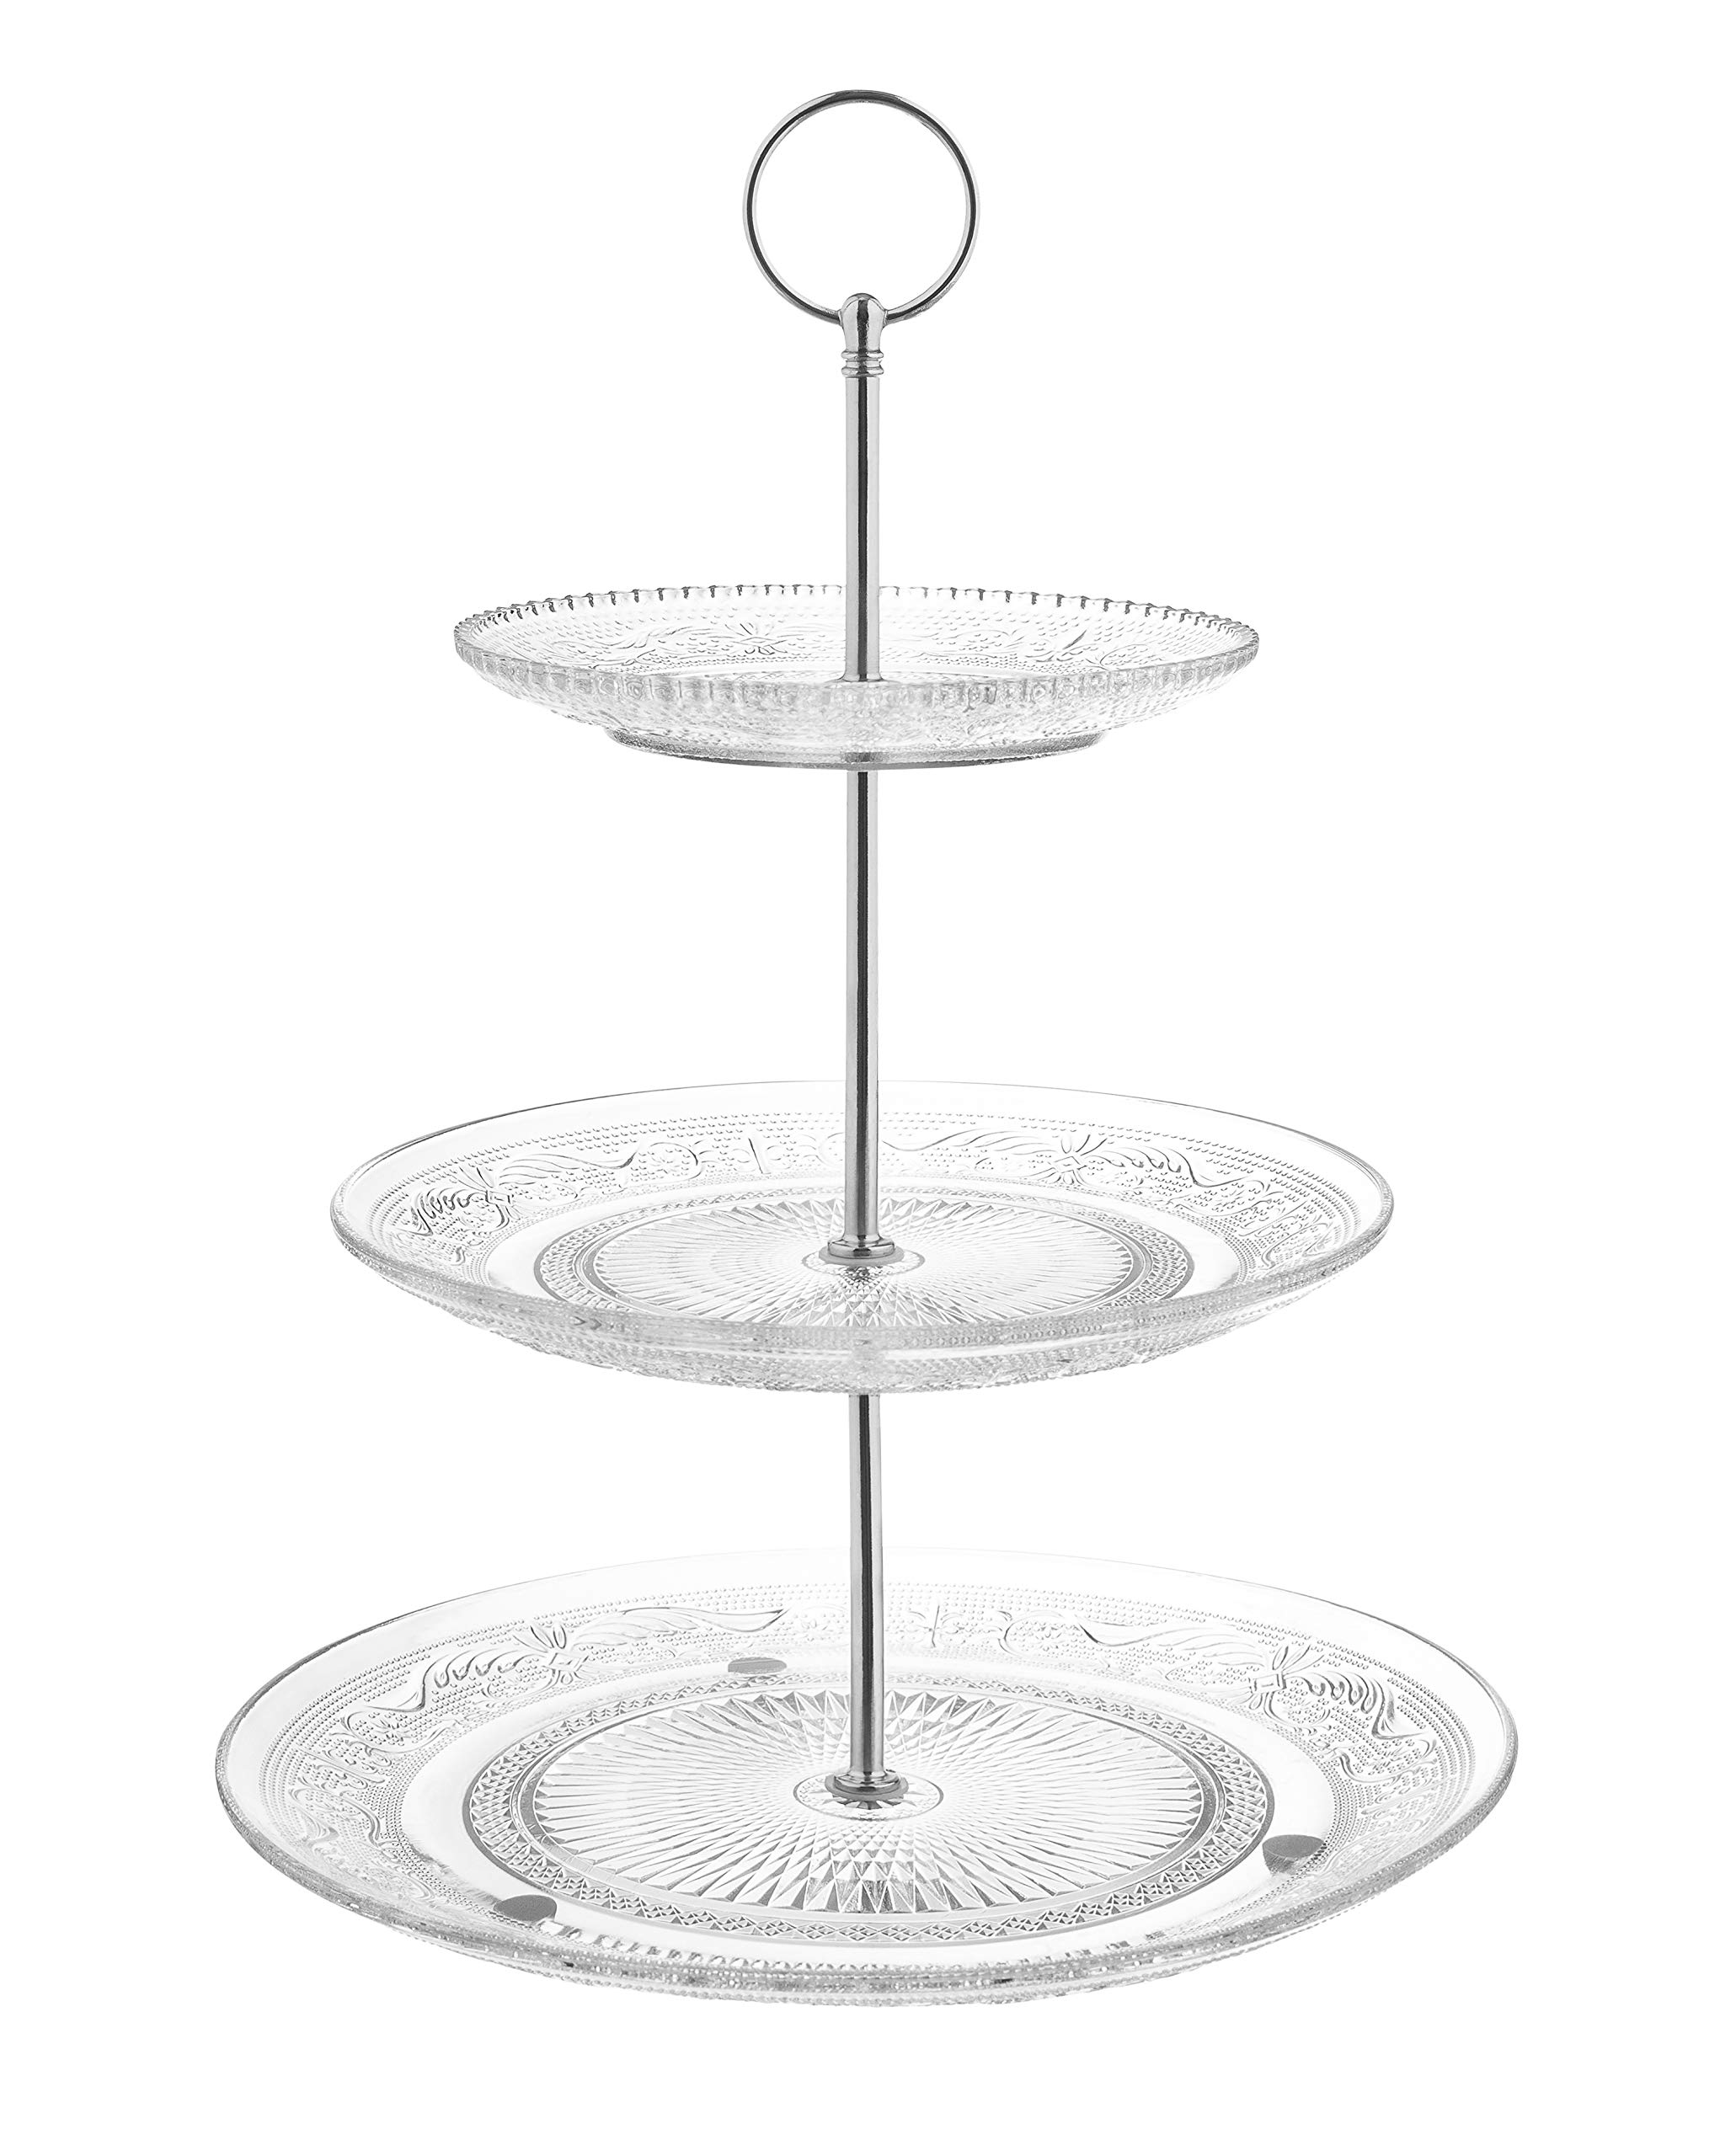 Fisher Home Products 3-Tiered Serving Stand (Glass) Beautiful, Elegant Dishware Serve Snacks, Appetizers, Cakes, Candies Durable, Reusable Party or Holiday Hosting (SILVER)